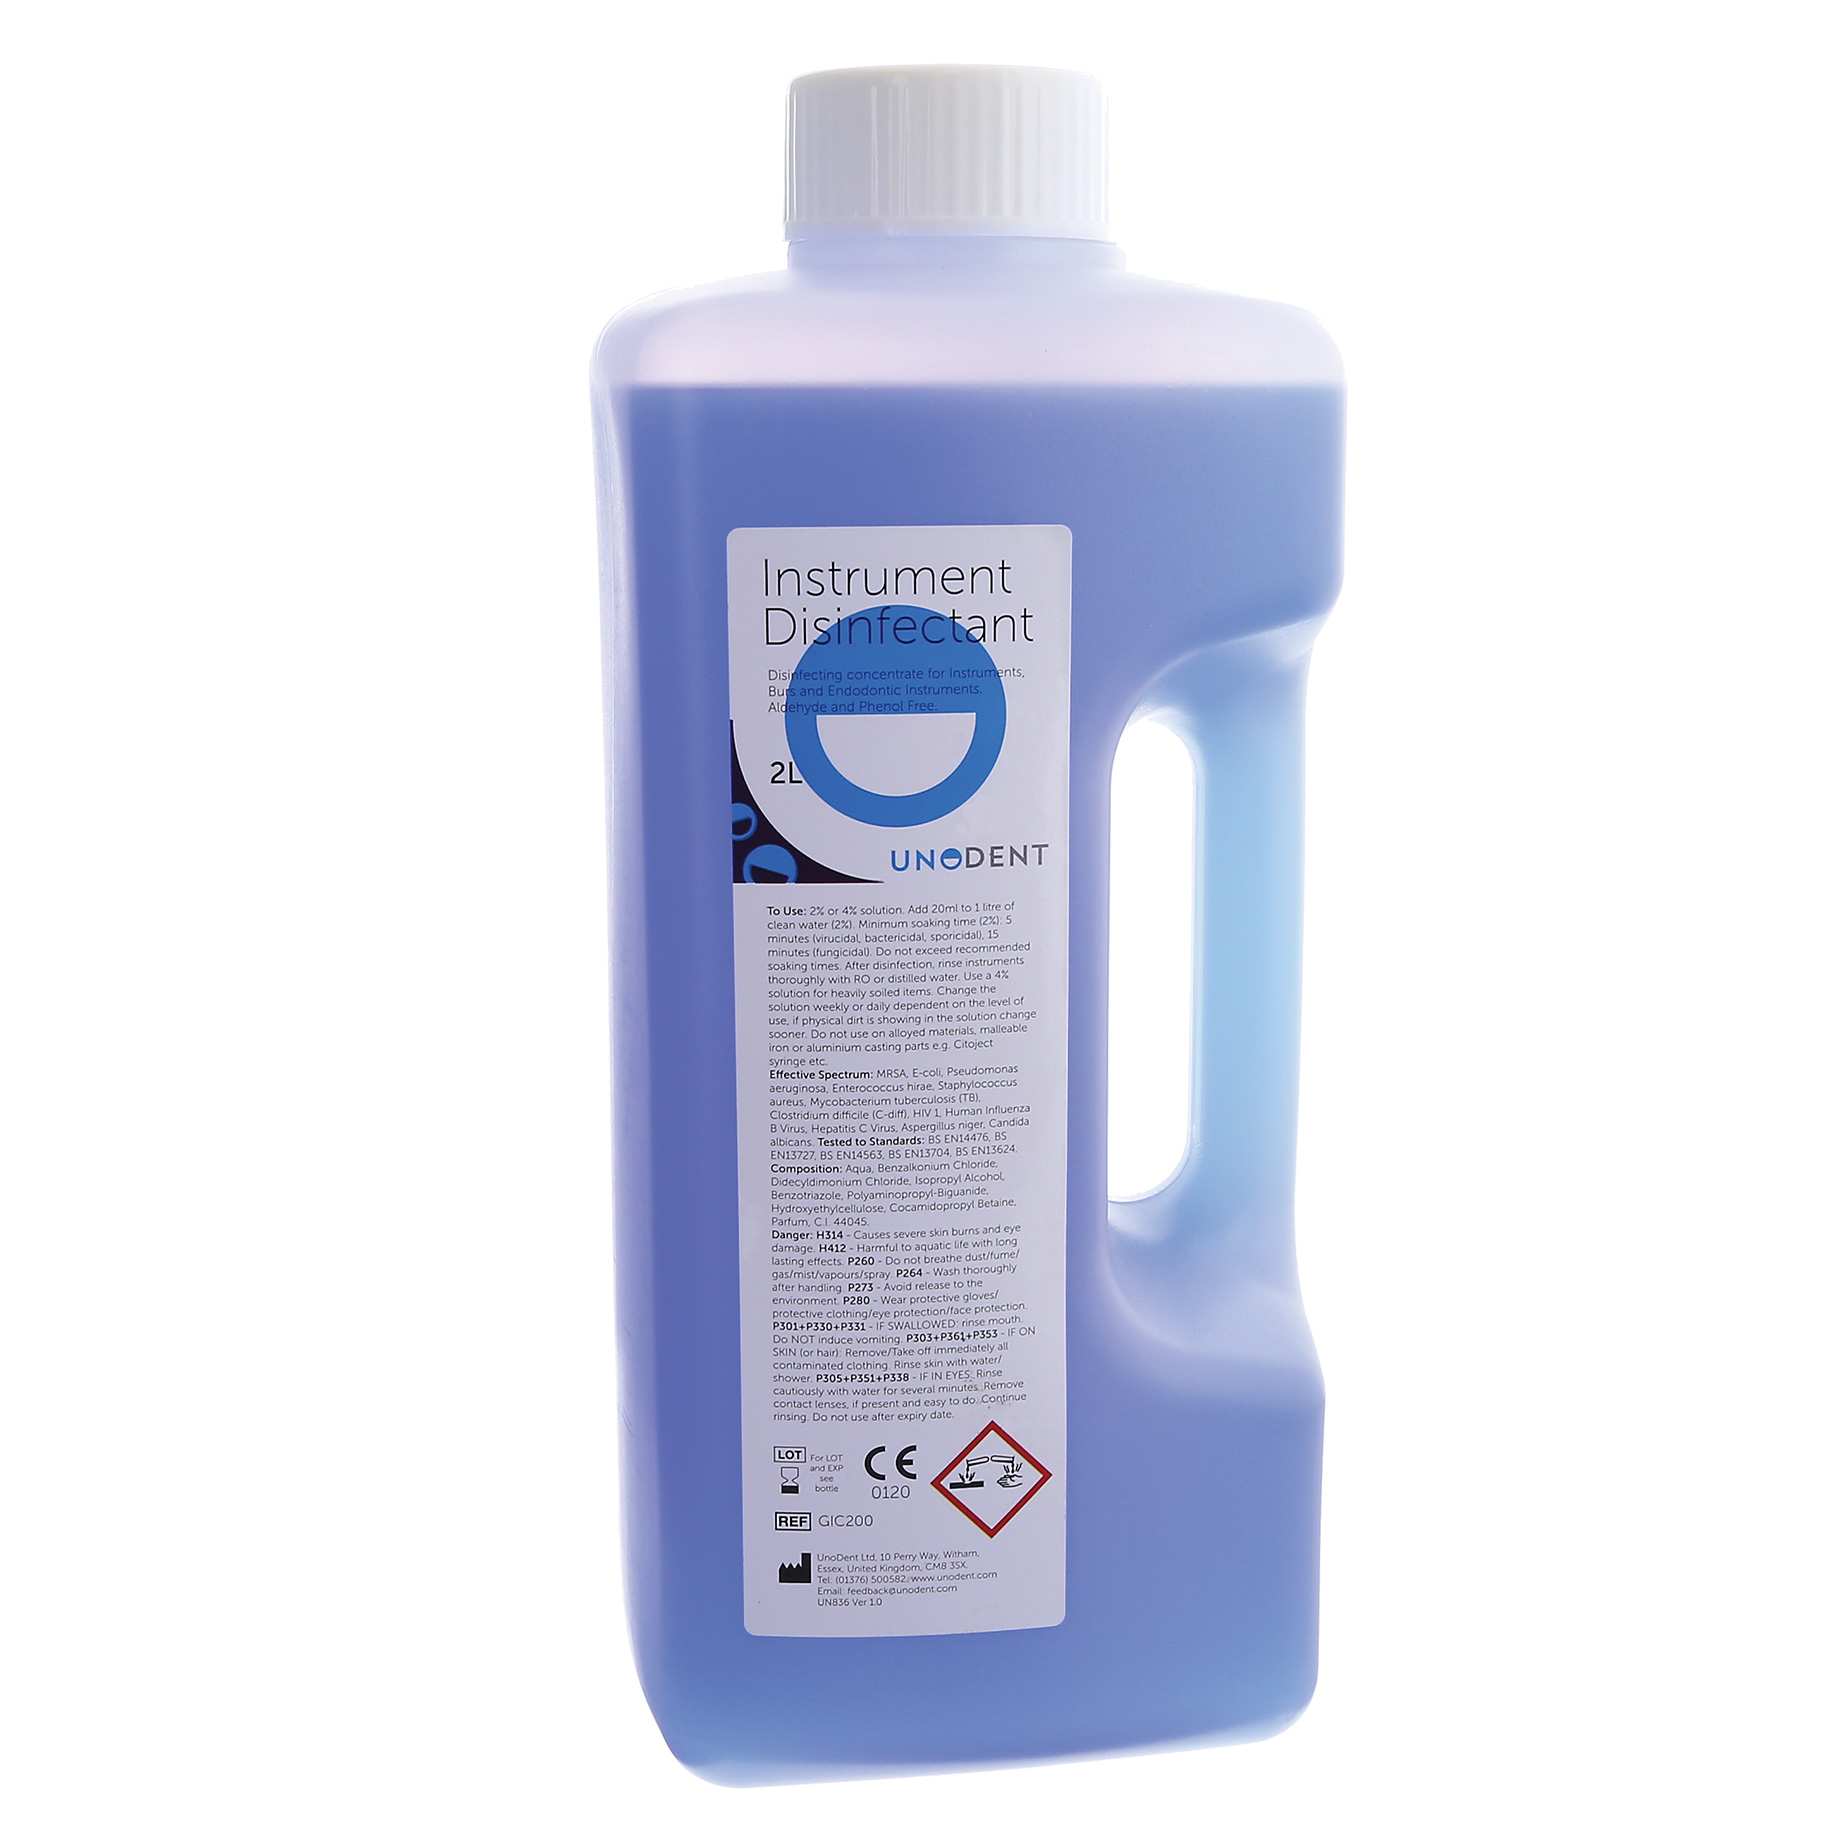 Instrument Cleanser/Disinfectant Concentrate